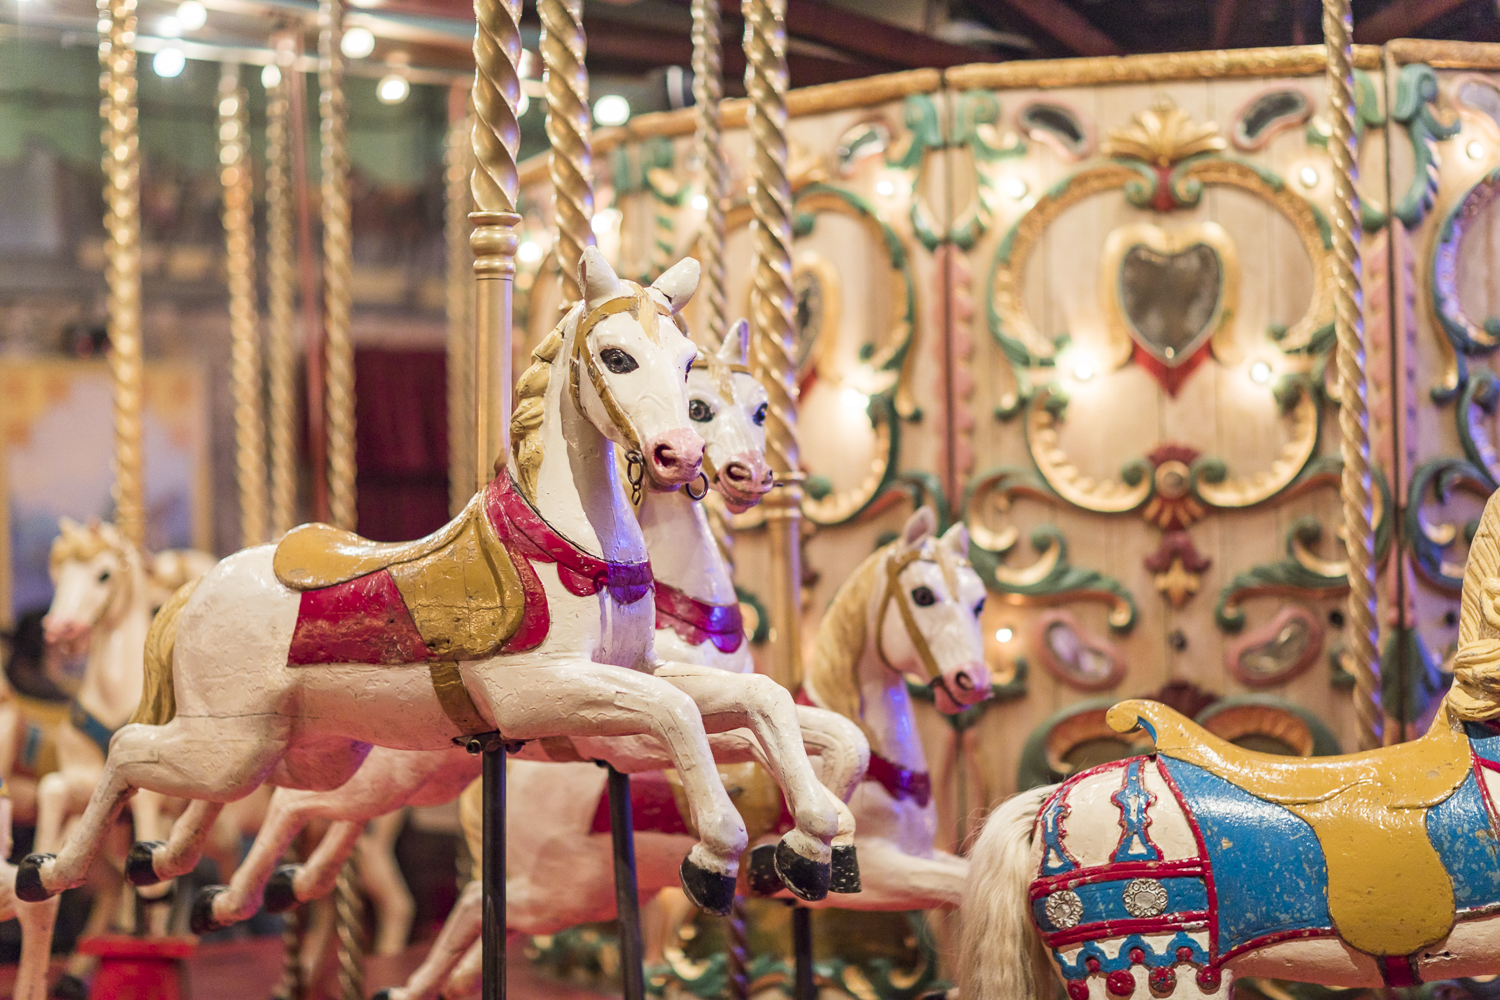 The carousels from the early 1900 Paris fairgrounds are simply beautiful. And they are not in the museum just to look at. As you will see in the video at the end of the blog post, they are in full use!